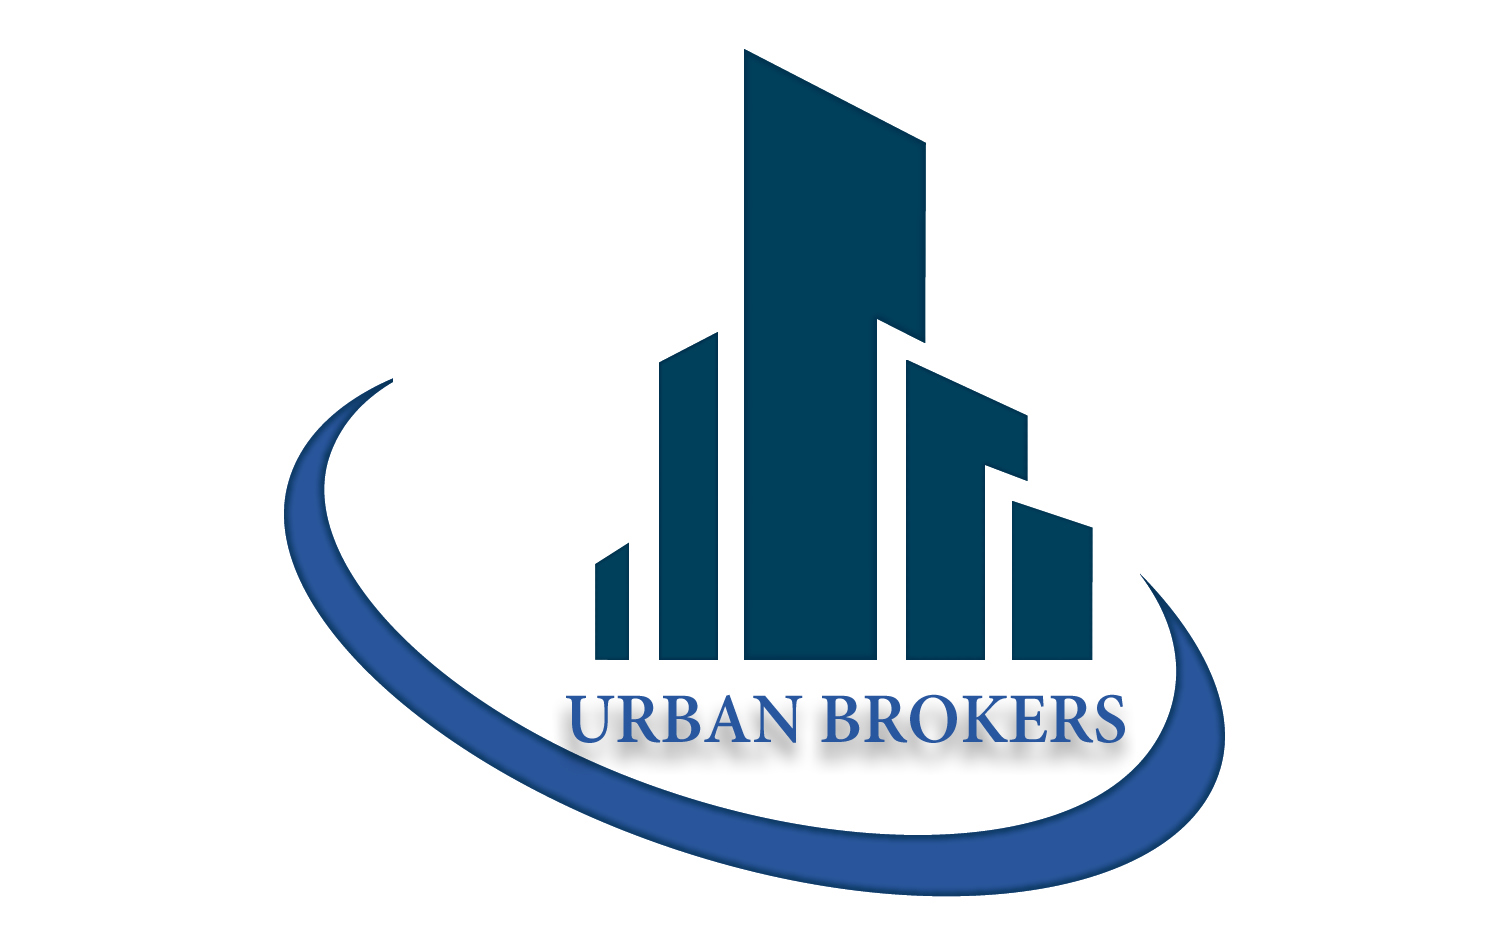 Urban Brokers